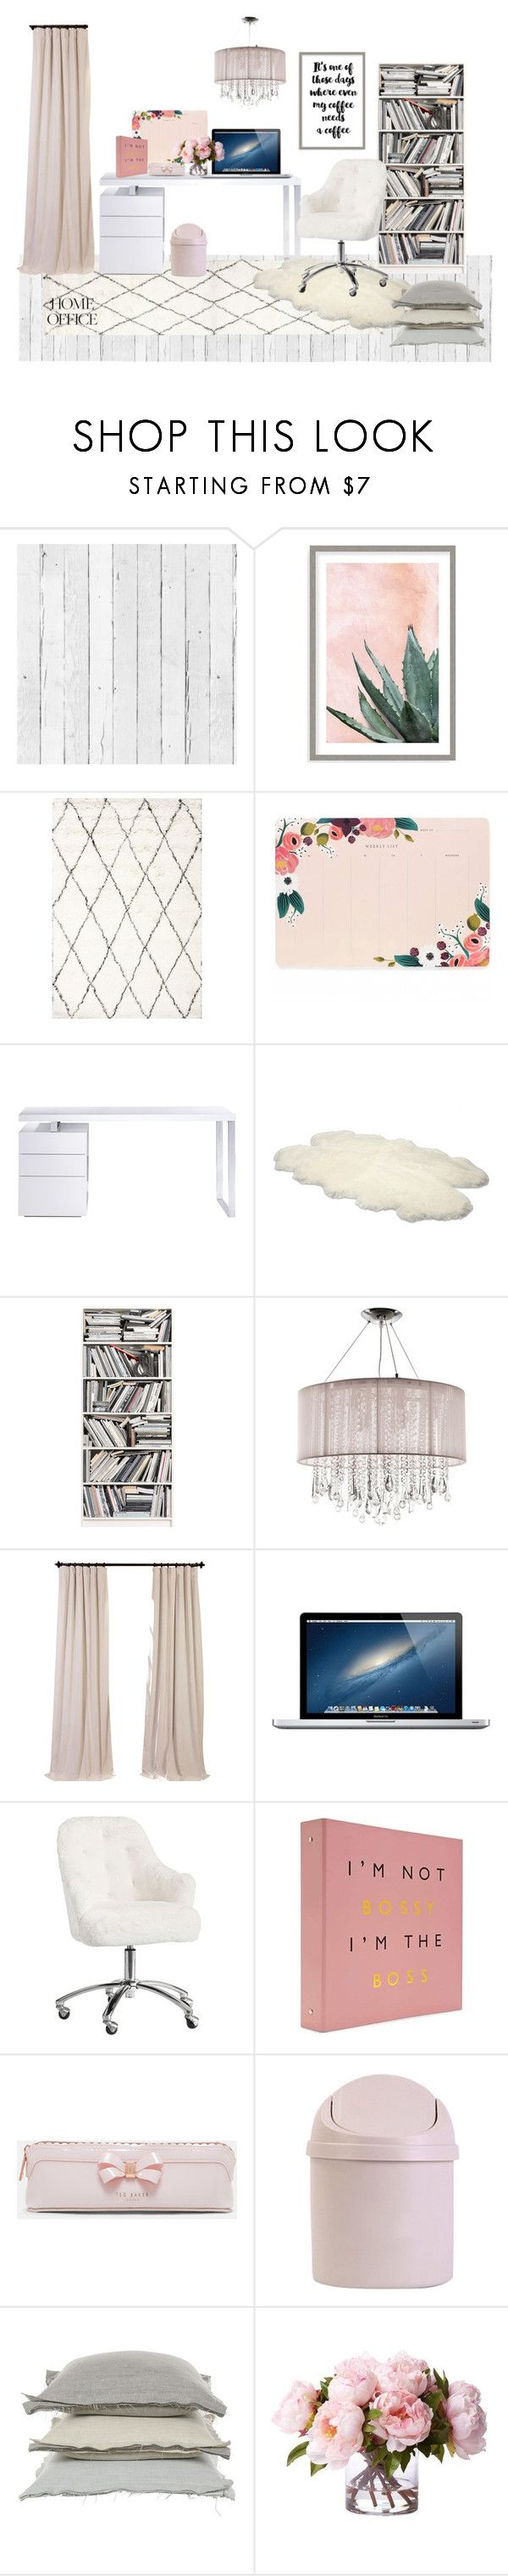 """""""Untitled #92"""" by uaresobeautiful ❤ liked on Polyvore featuring interior, interiors, interior design, home, home decor, interior decorating, NLXL, Art Addiction, Rifle Paper Co and Bellini"""